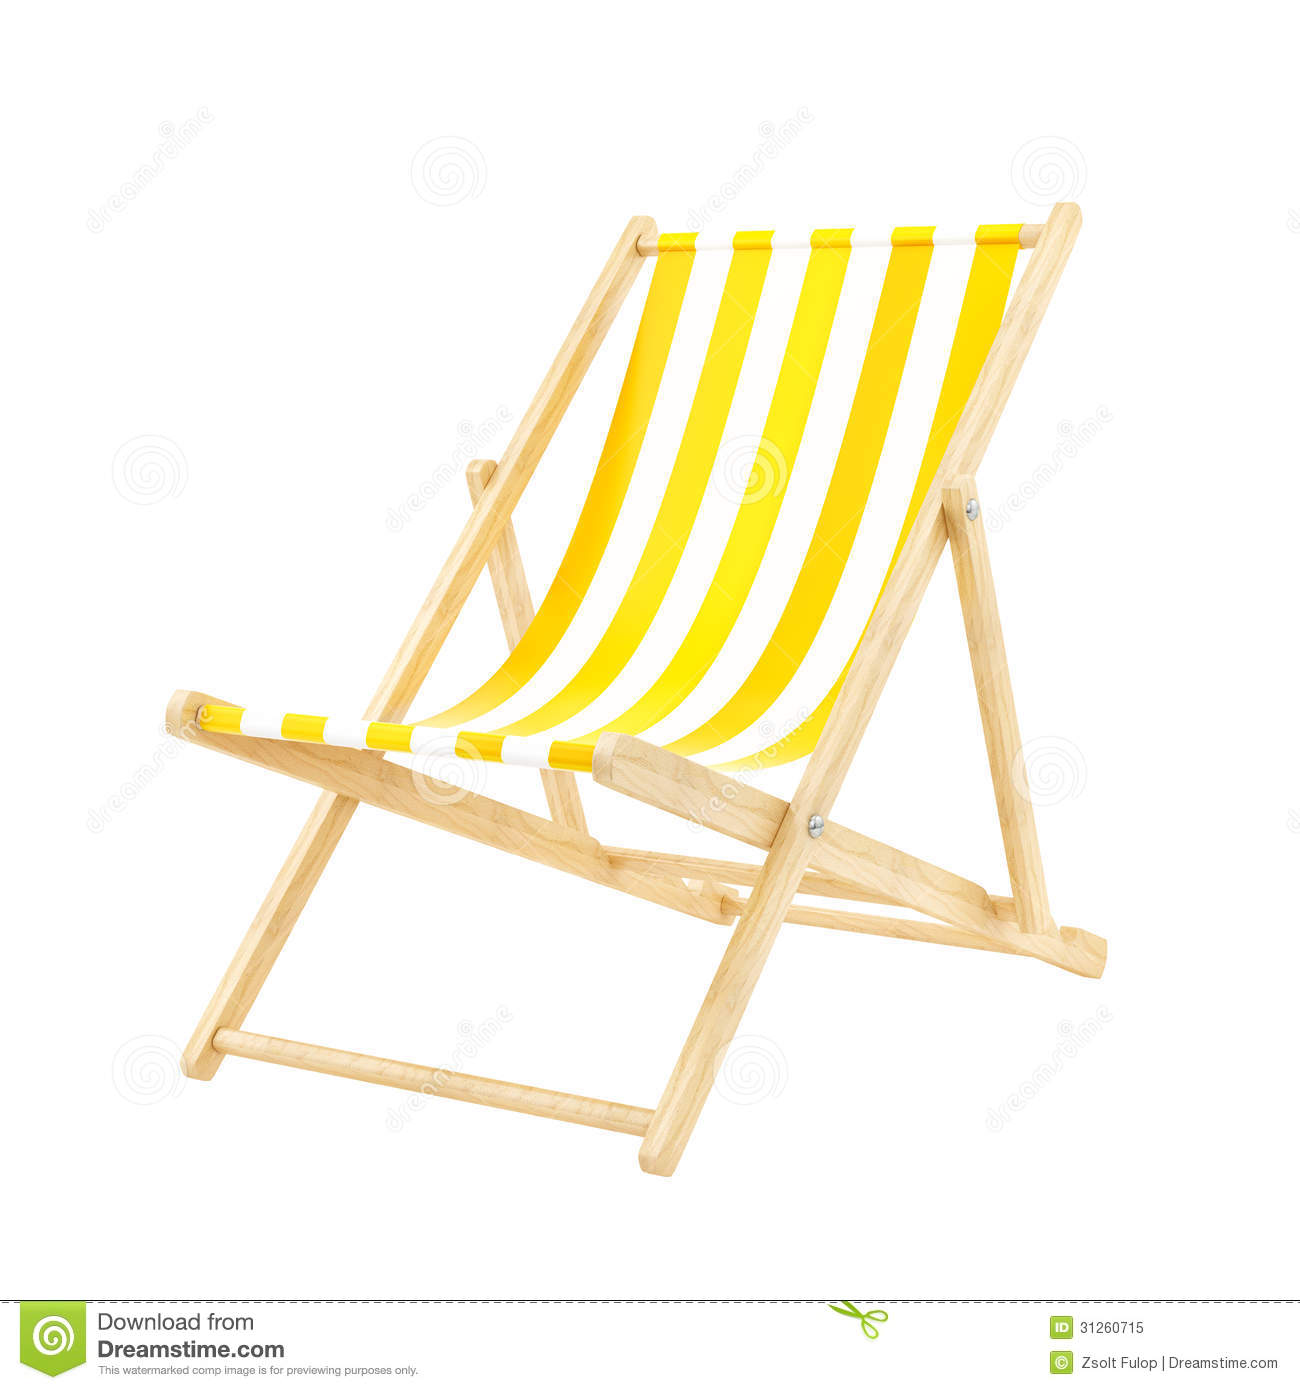 Deck chair clipart.